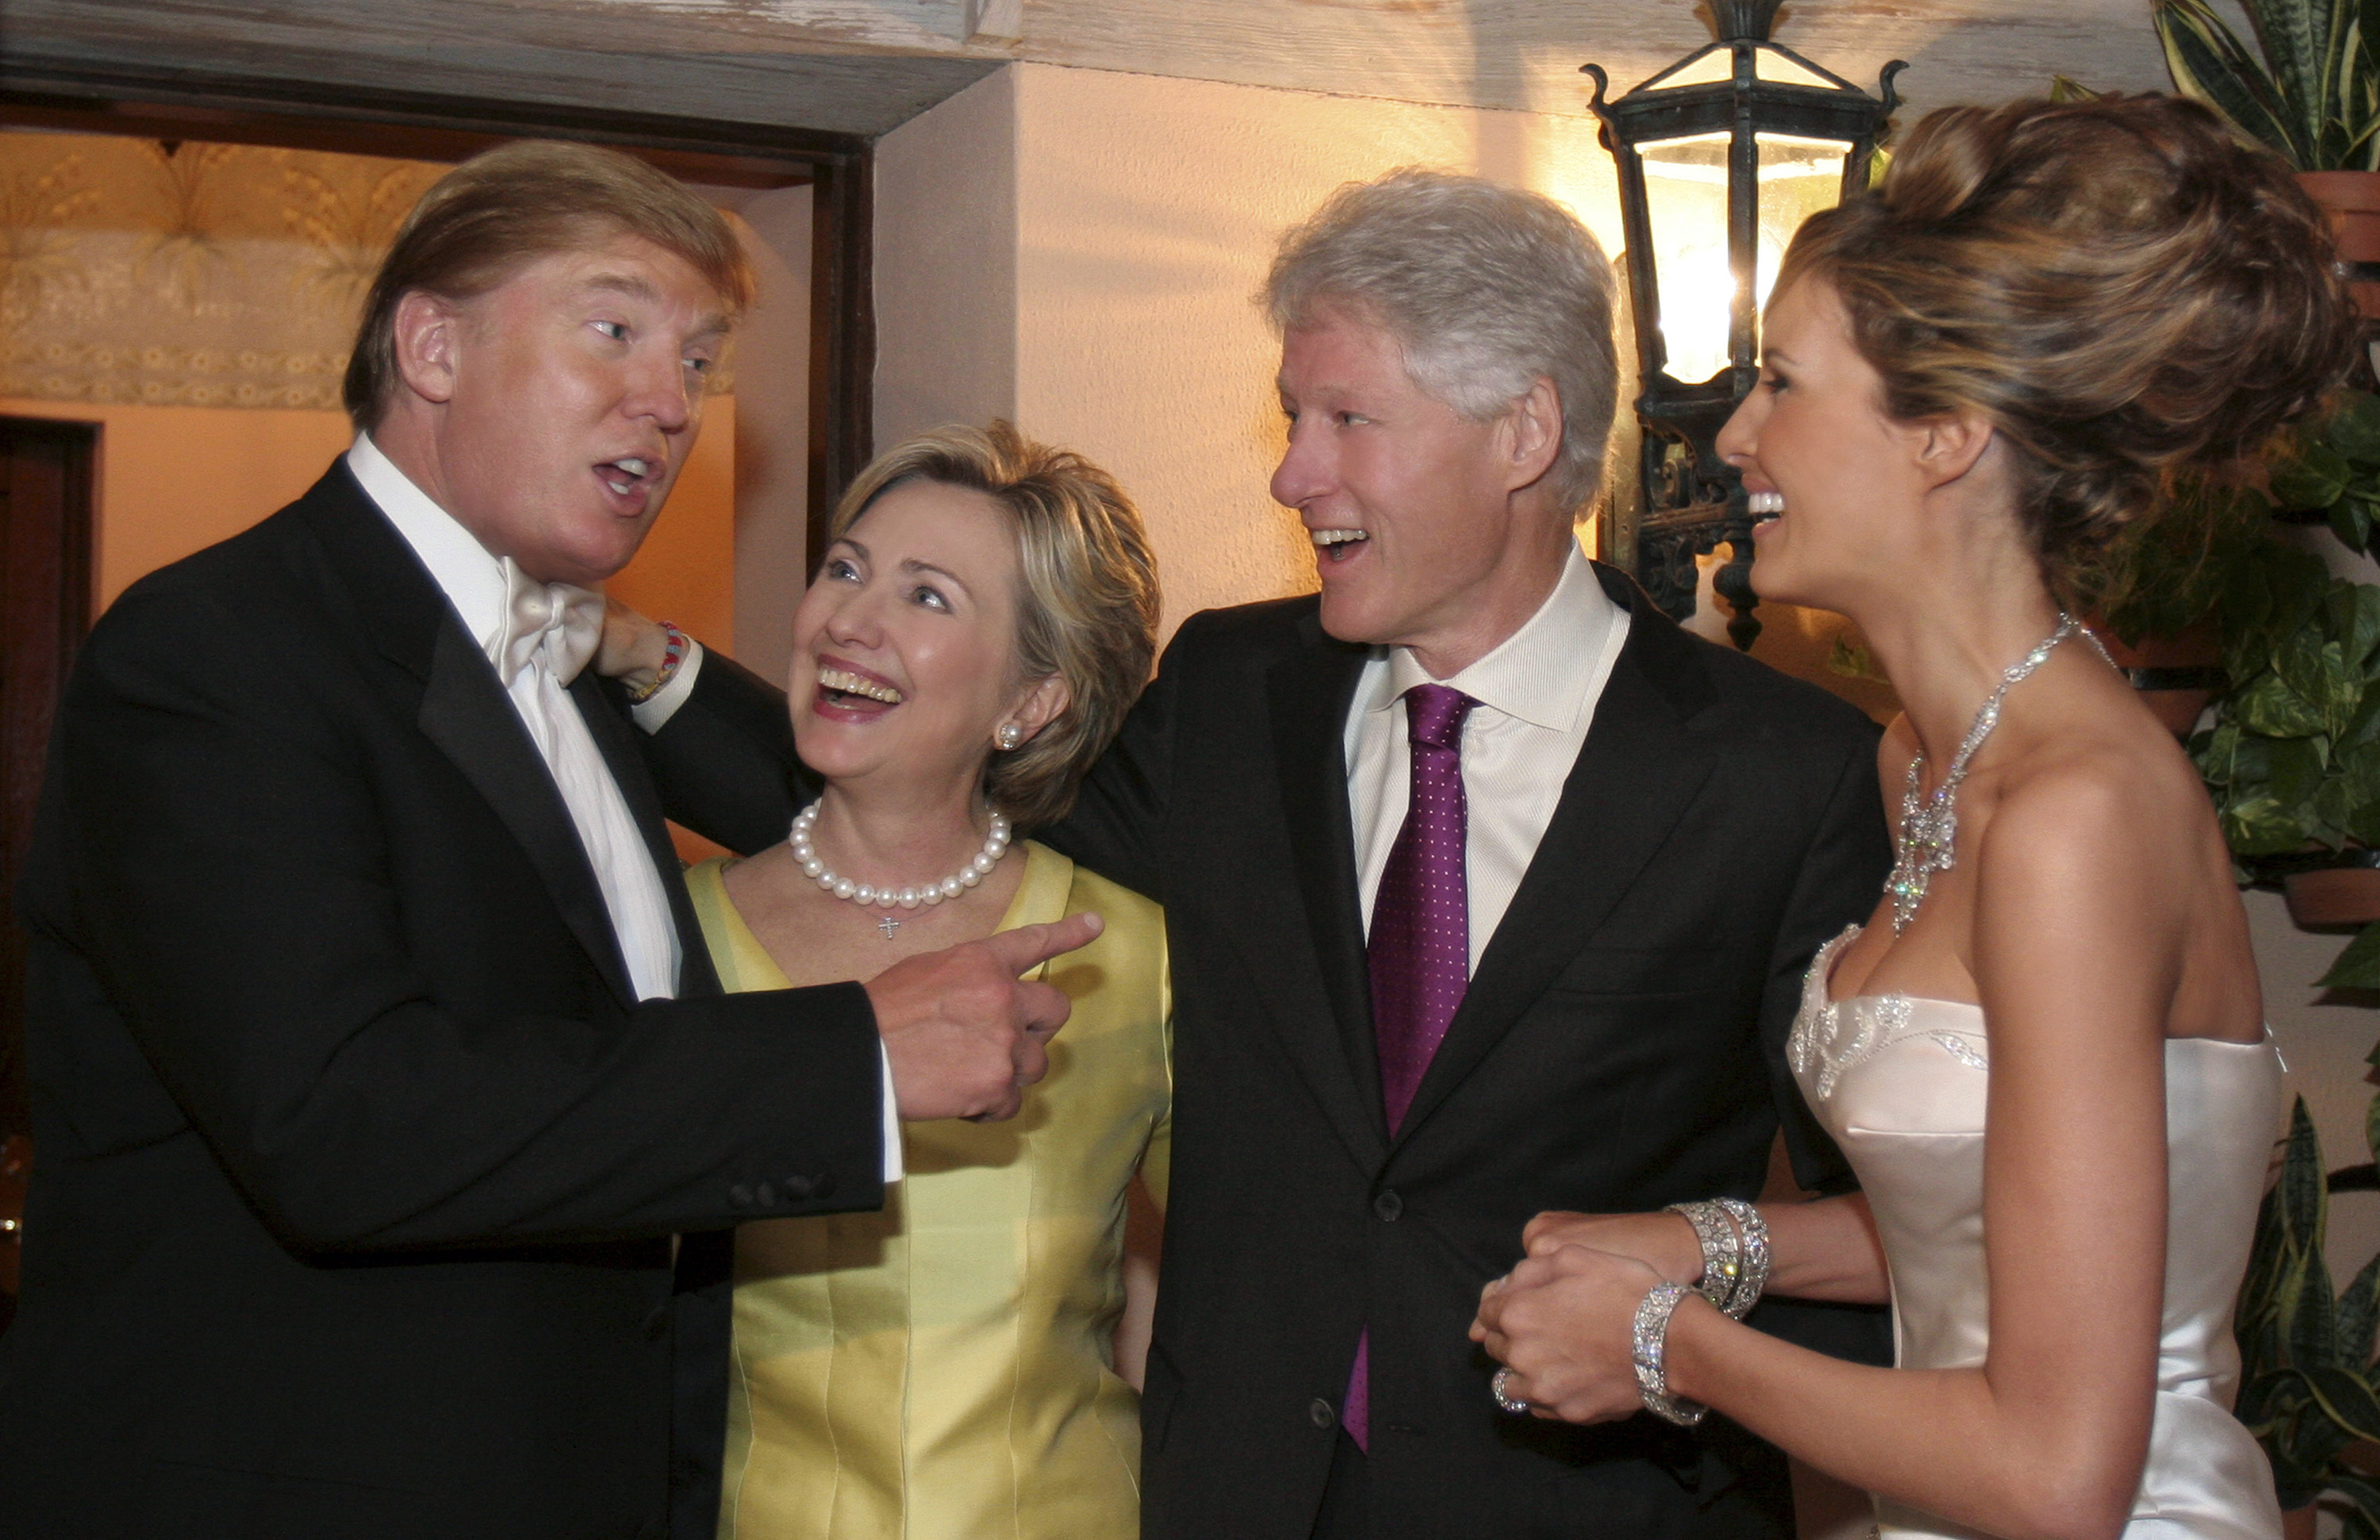 Trump with Hillary family